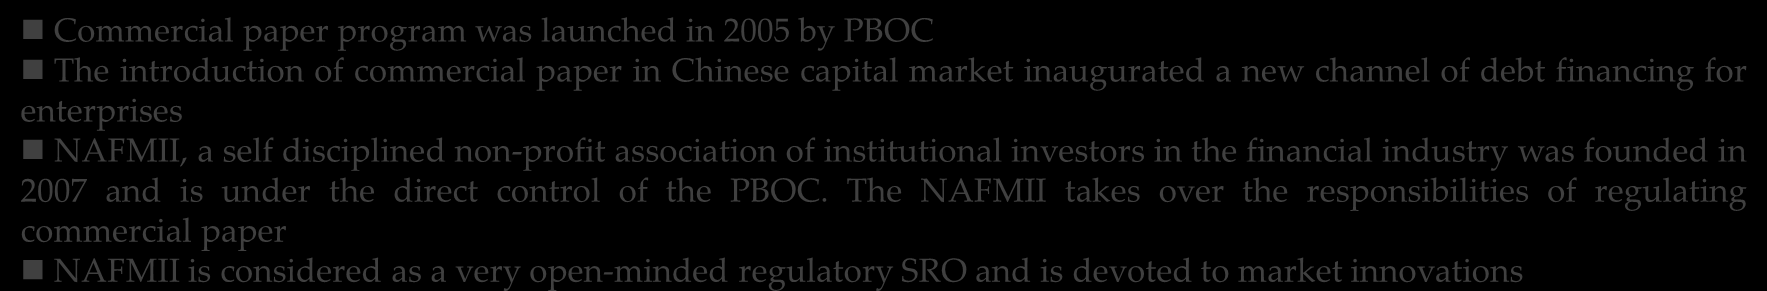 2.2 Major Breakthrough Commercial Paper Commercial paper program was launched in 2005 by PBOC The introduction of commercial paper in Chinese capital market inaugurated a new channel of debt